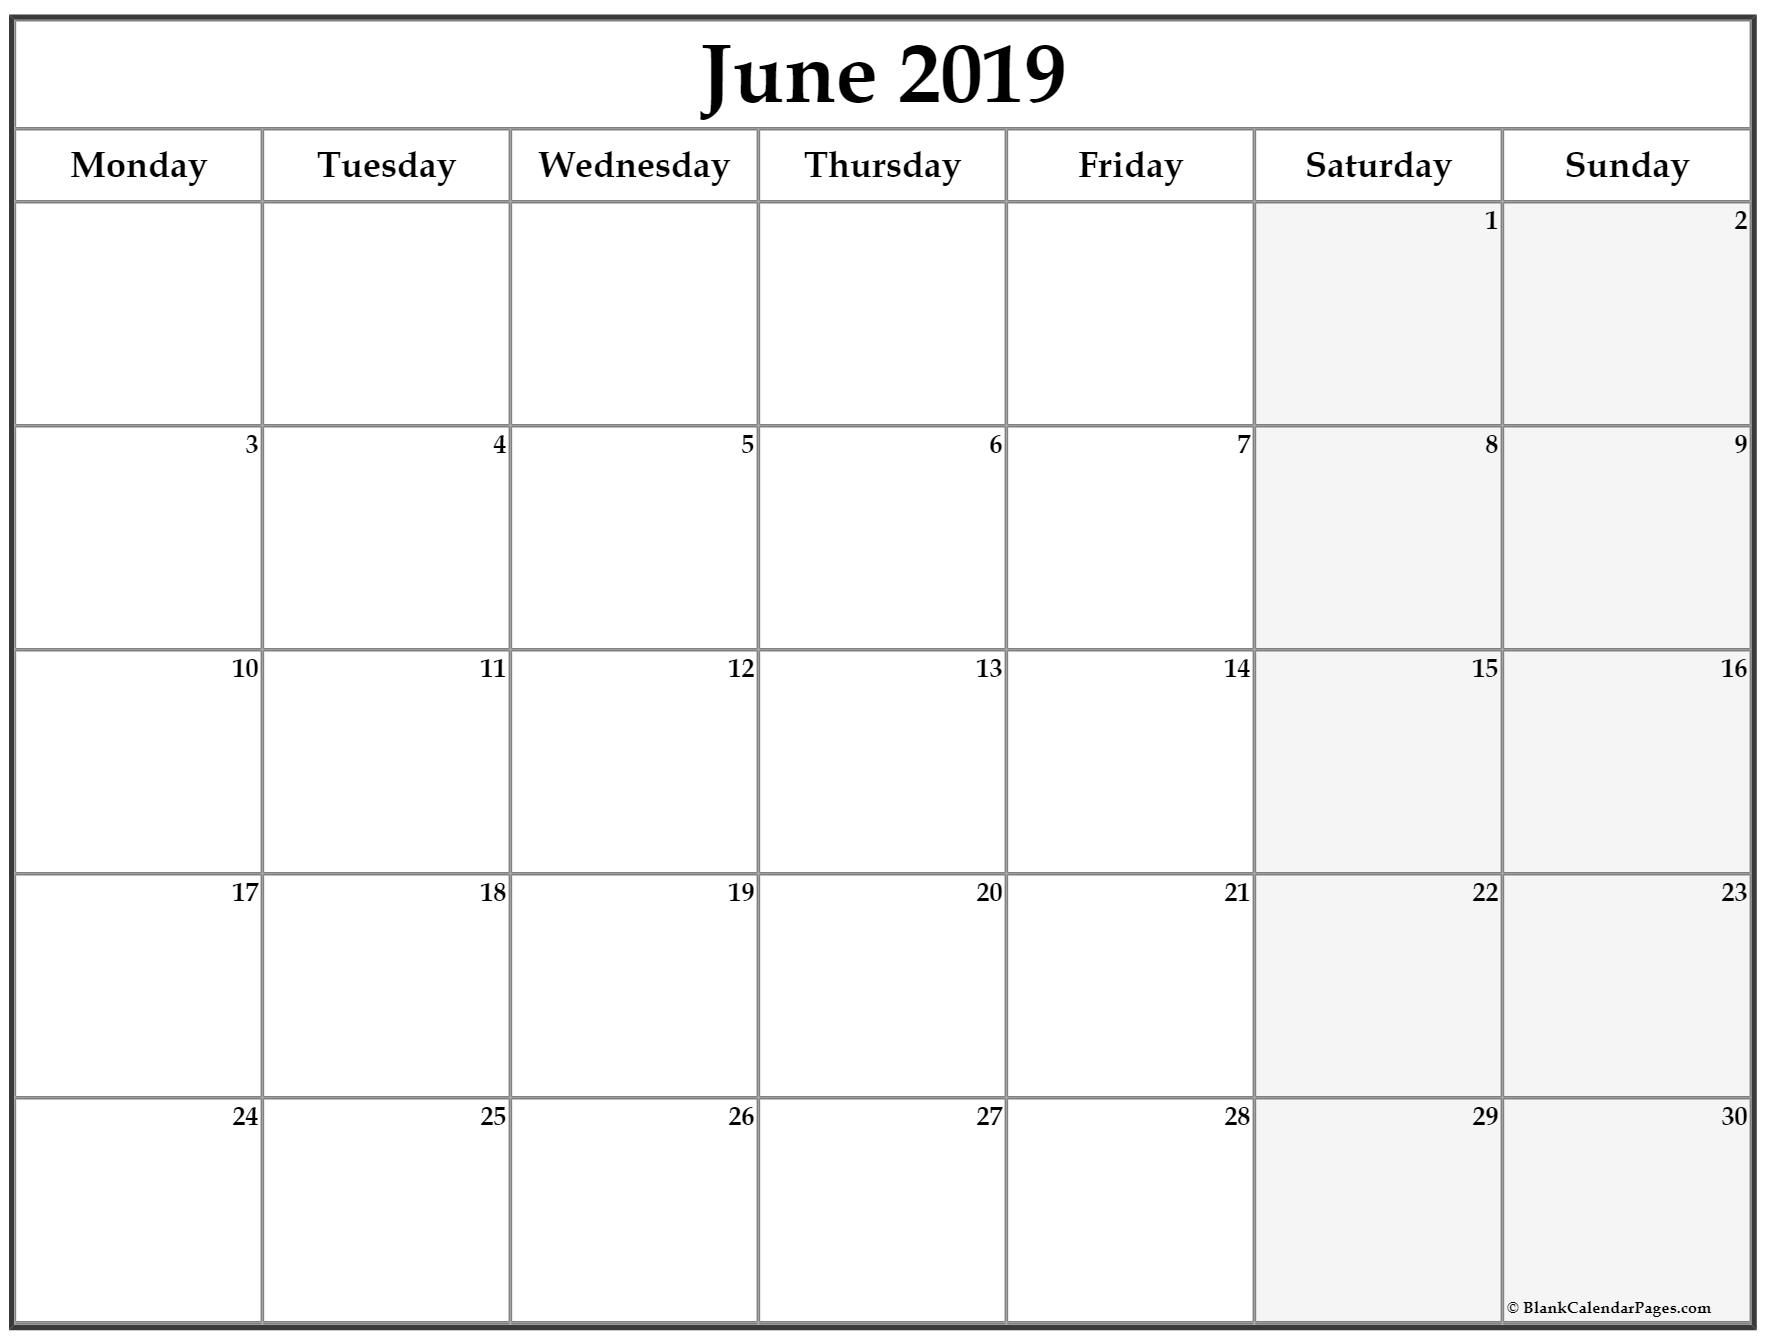 June 2019 Monday Calendar. Monday To Sunday | Calendar, June